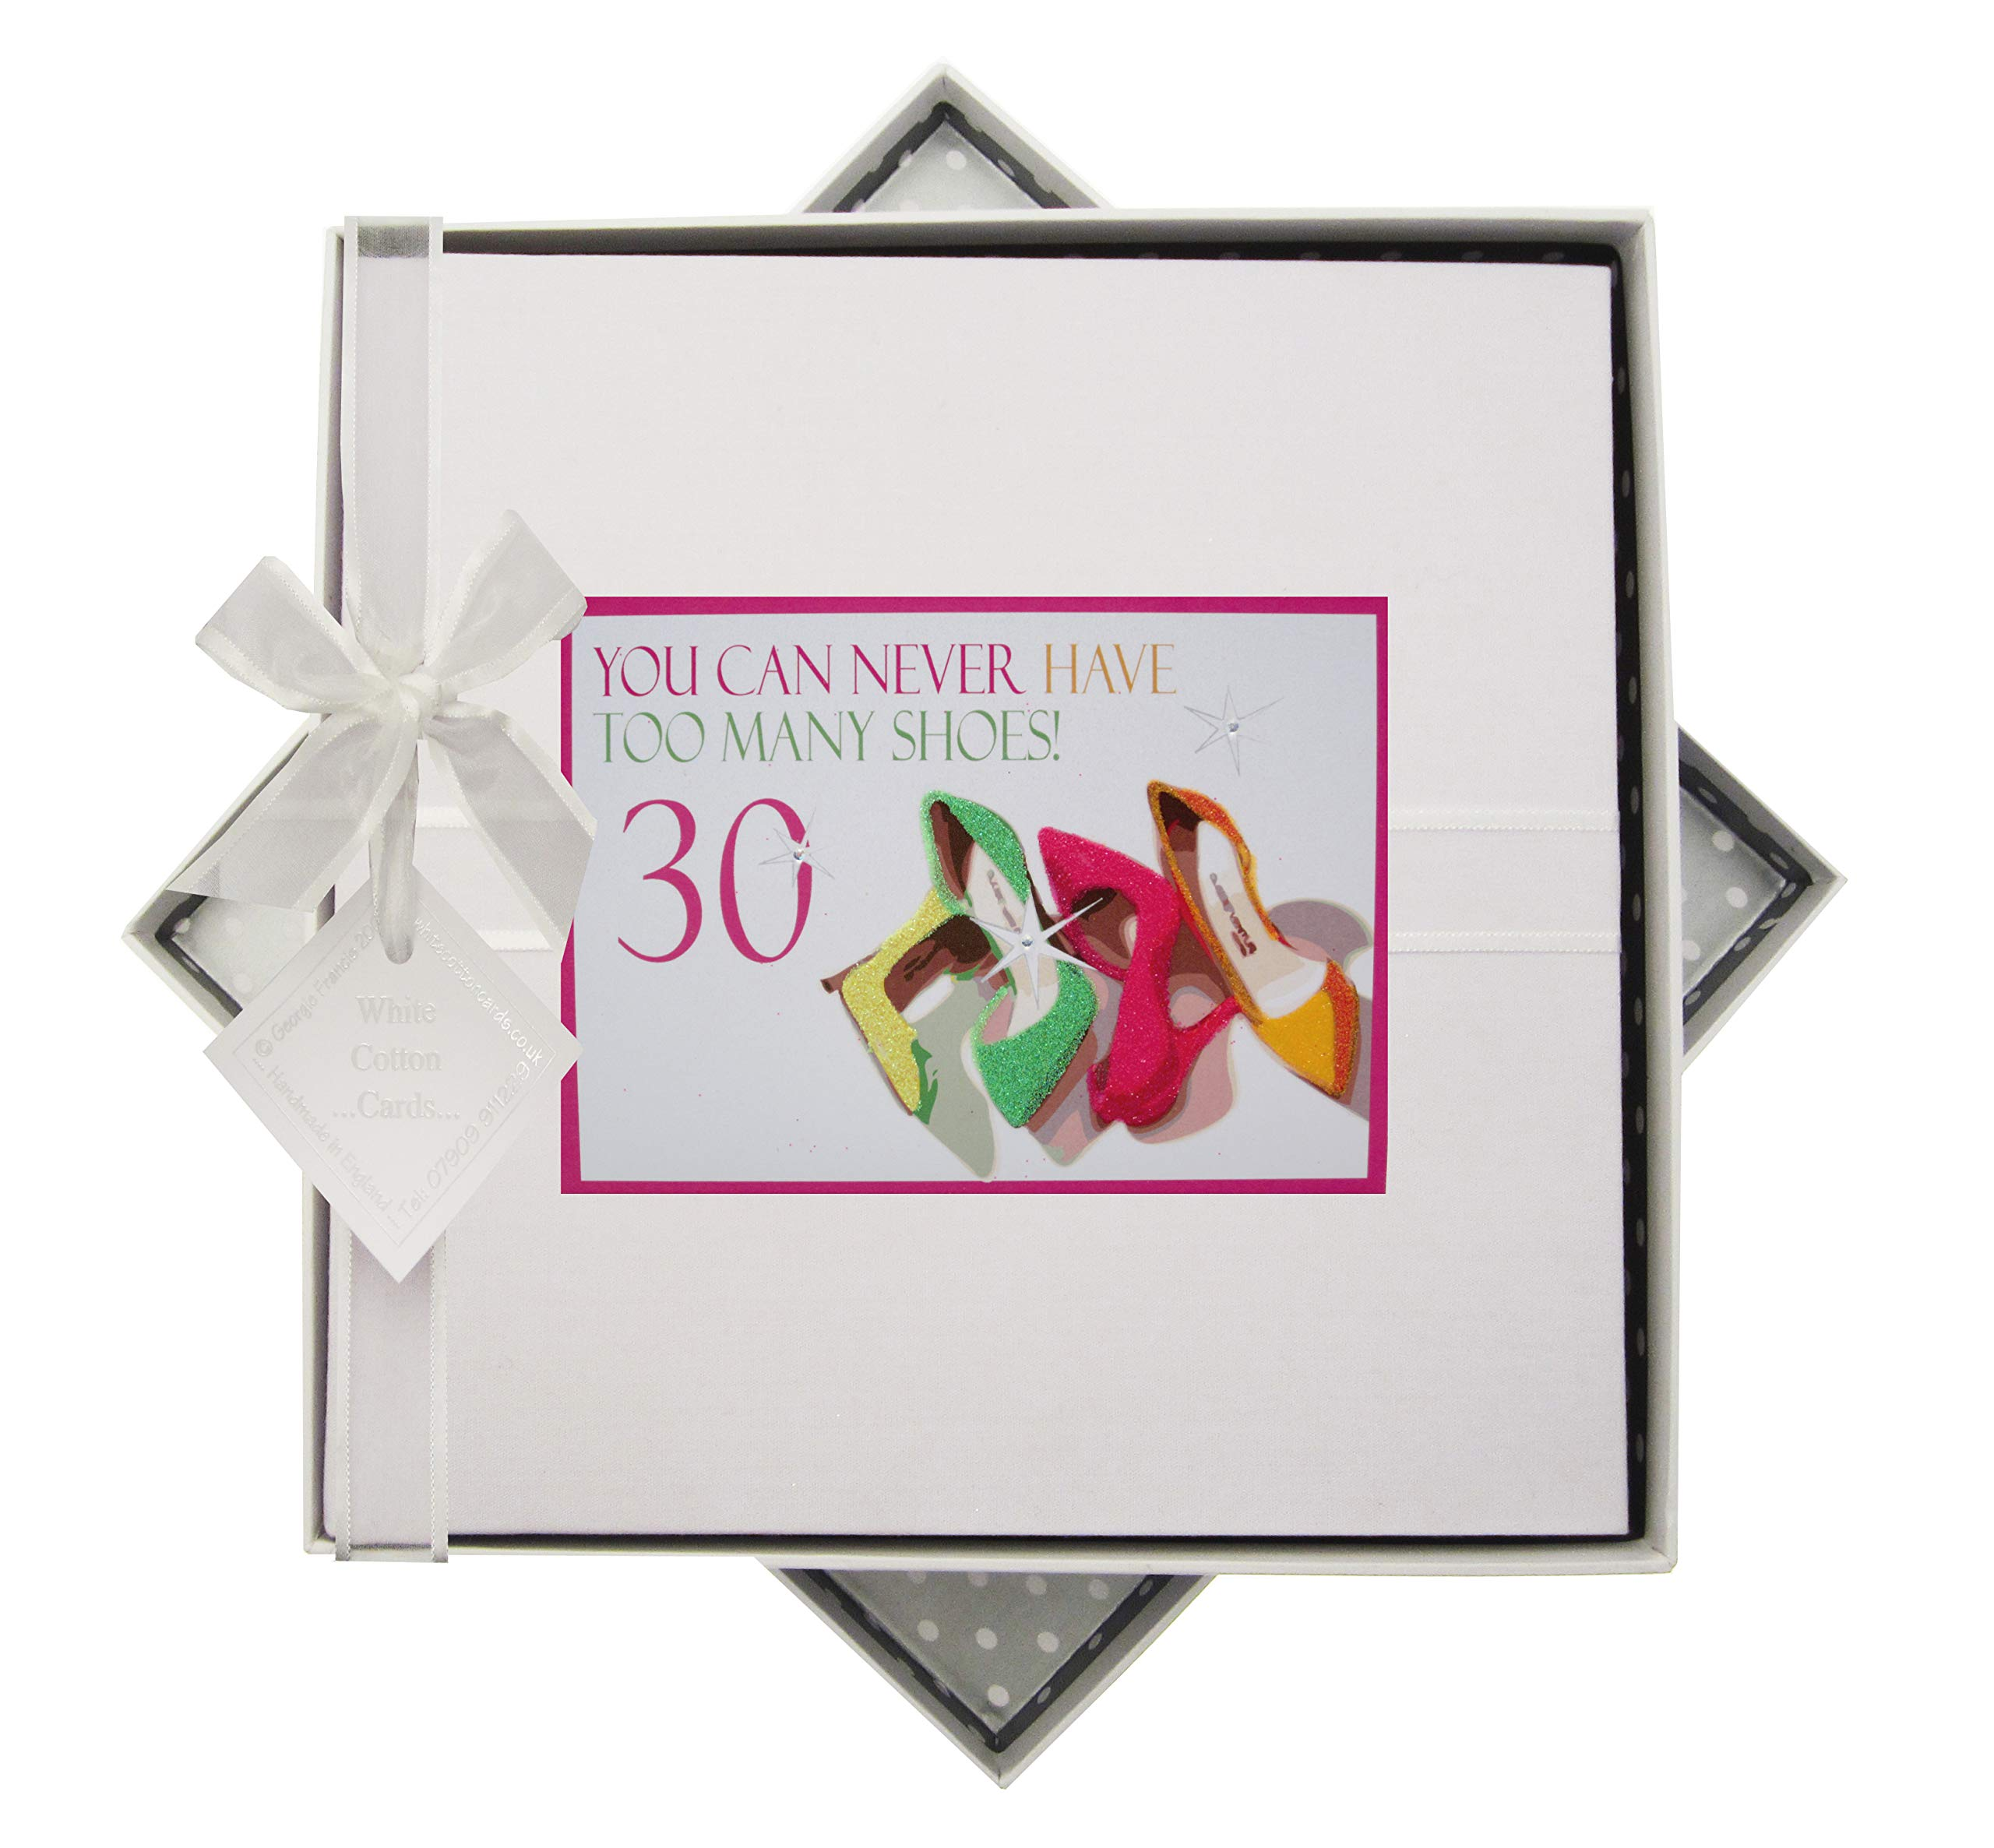 White Cotton Cards NSH30M''You can Never Have Too Many Shoes, 30'' Traditional Birthday Photo Album - Neon